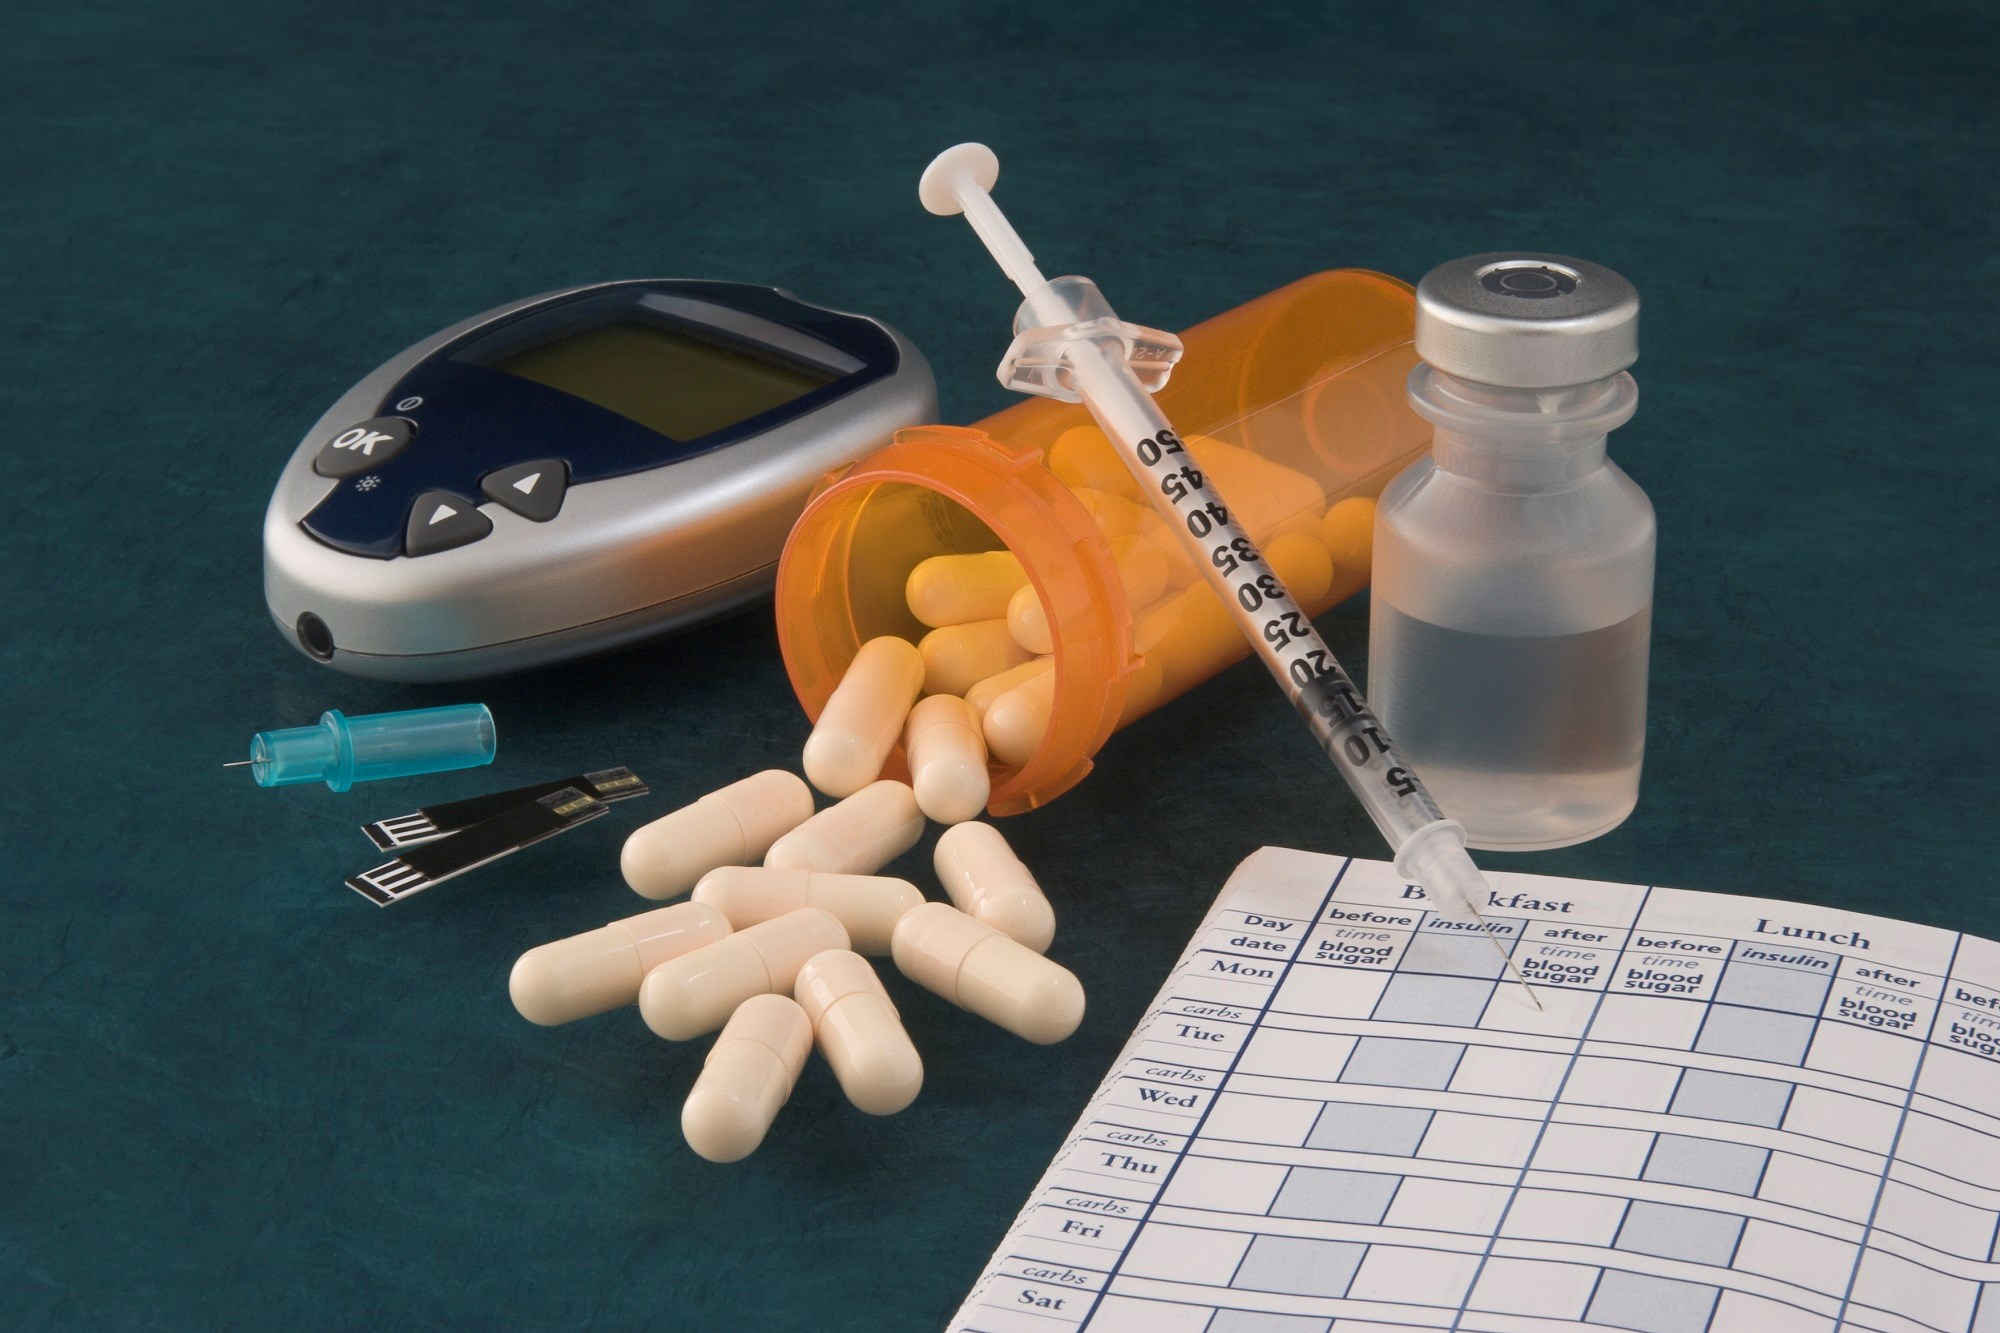 The medications were not associated with severe hypoglycemia and treatment satisfaction did not significantly differ between groups, though both were associated with mild gastrointestinal symptoms.